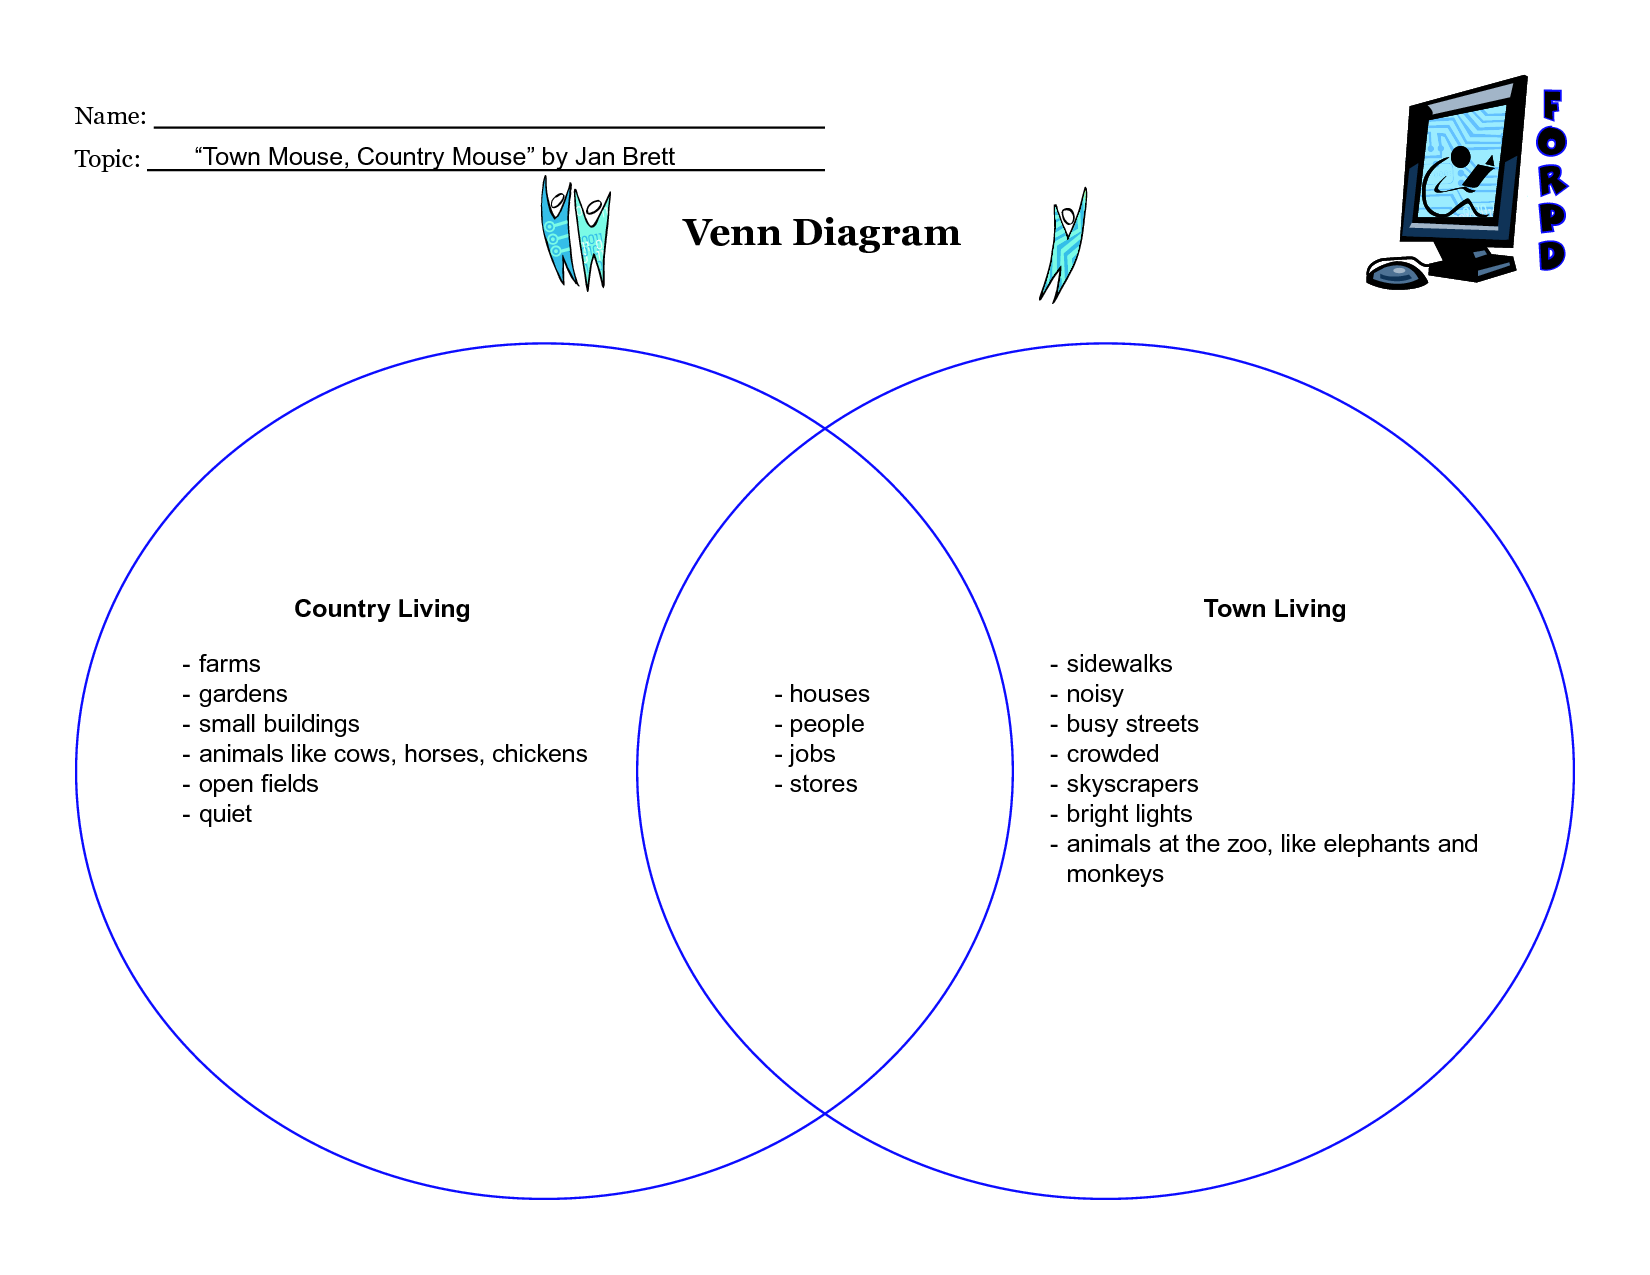 venn diagram worksheet country life city life name topic town mouse country mouse by jan brett [ 1650 x 1275 Pixel ]